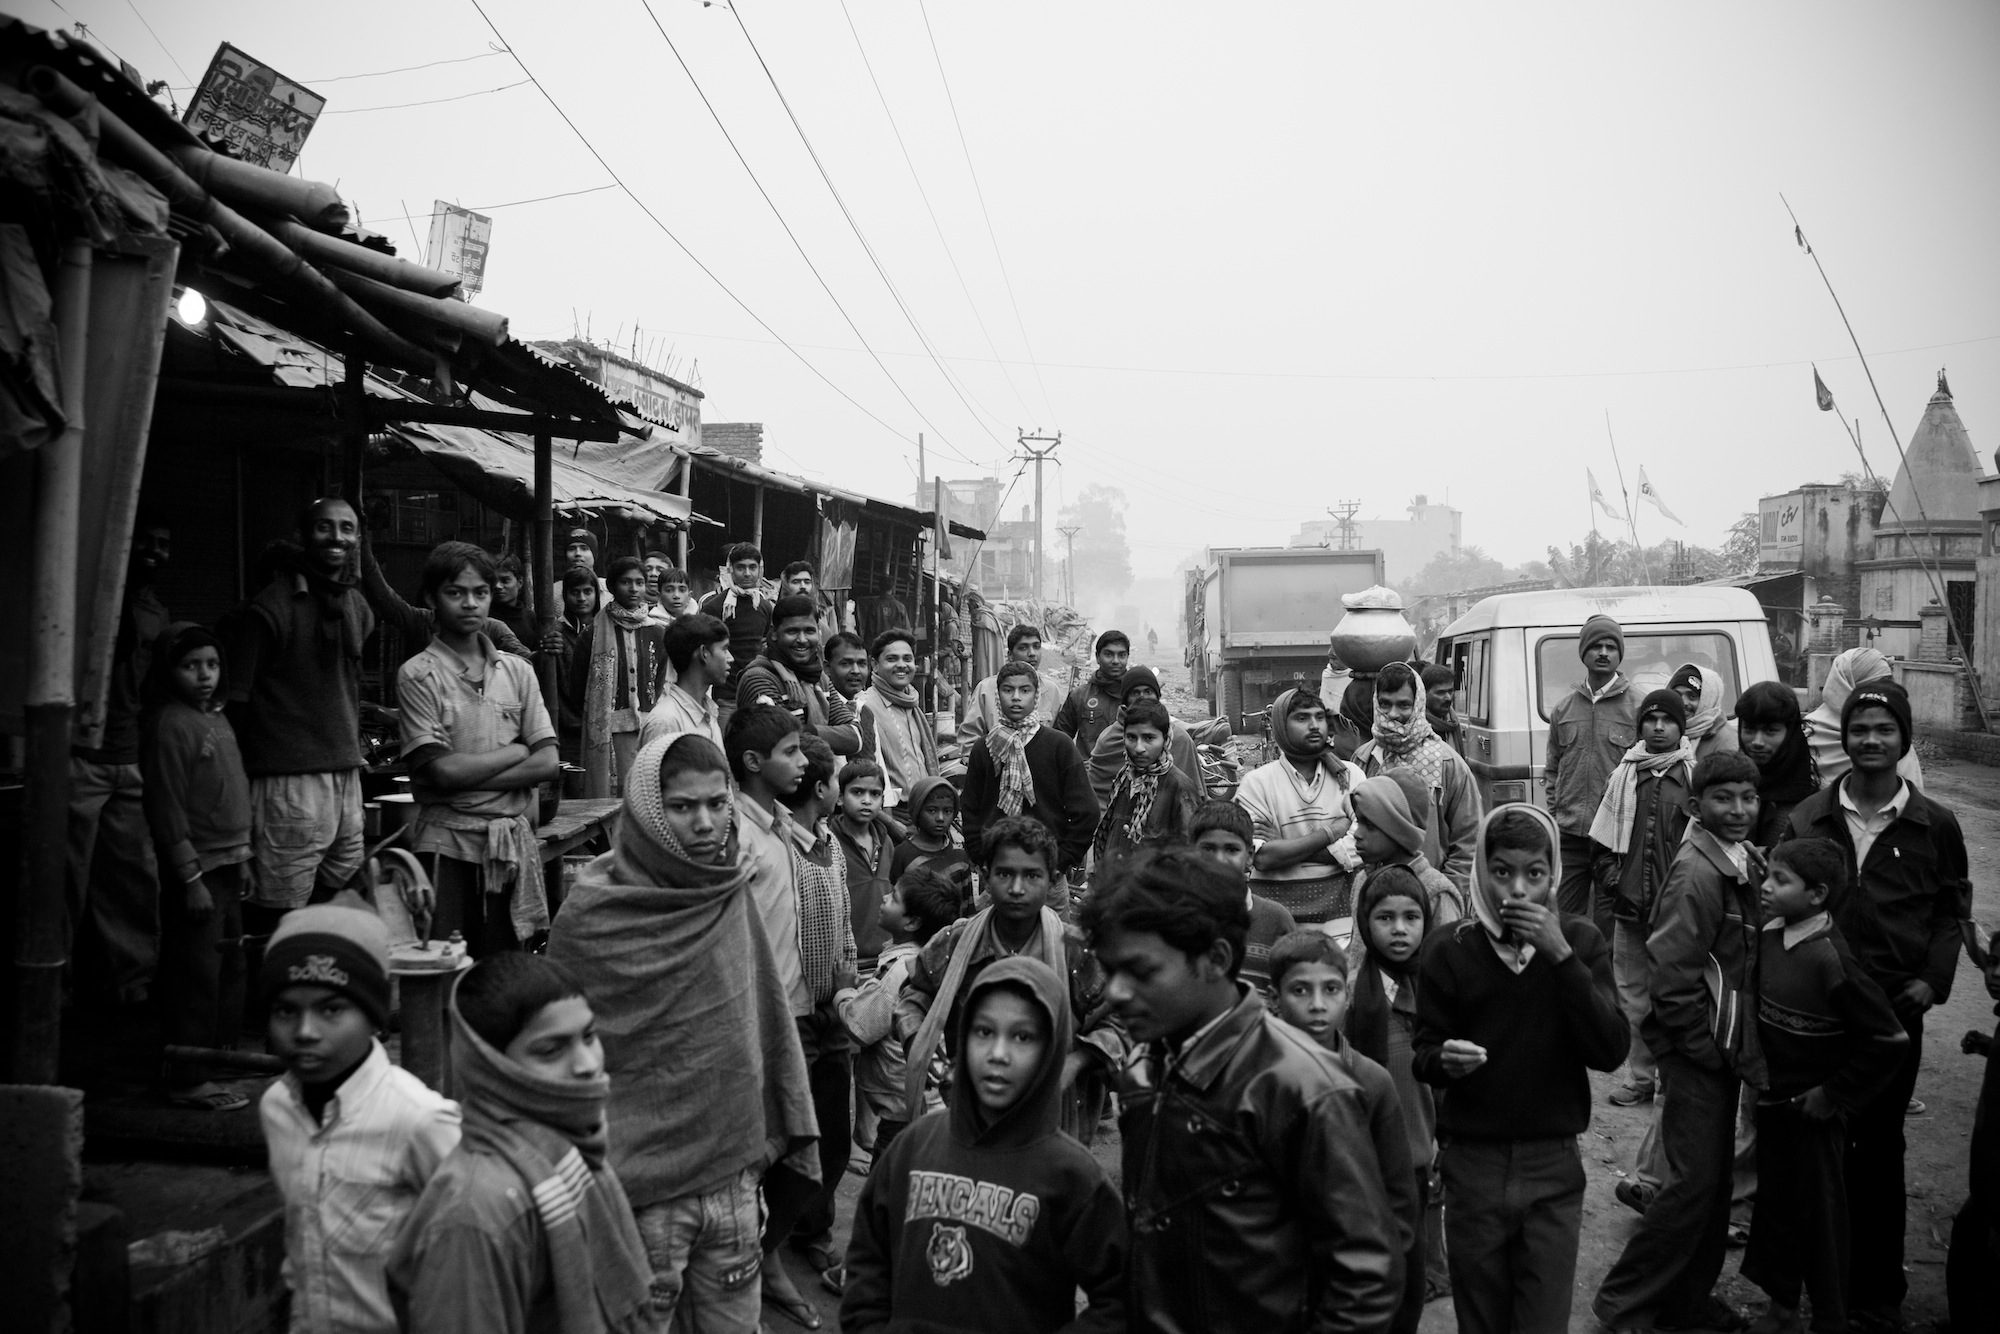 the india stare / blog of photographer steven gray